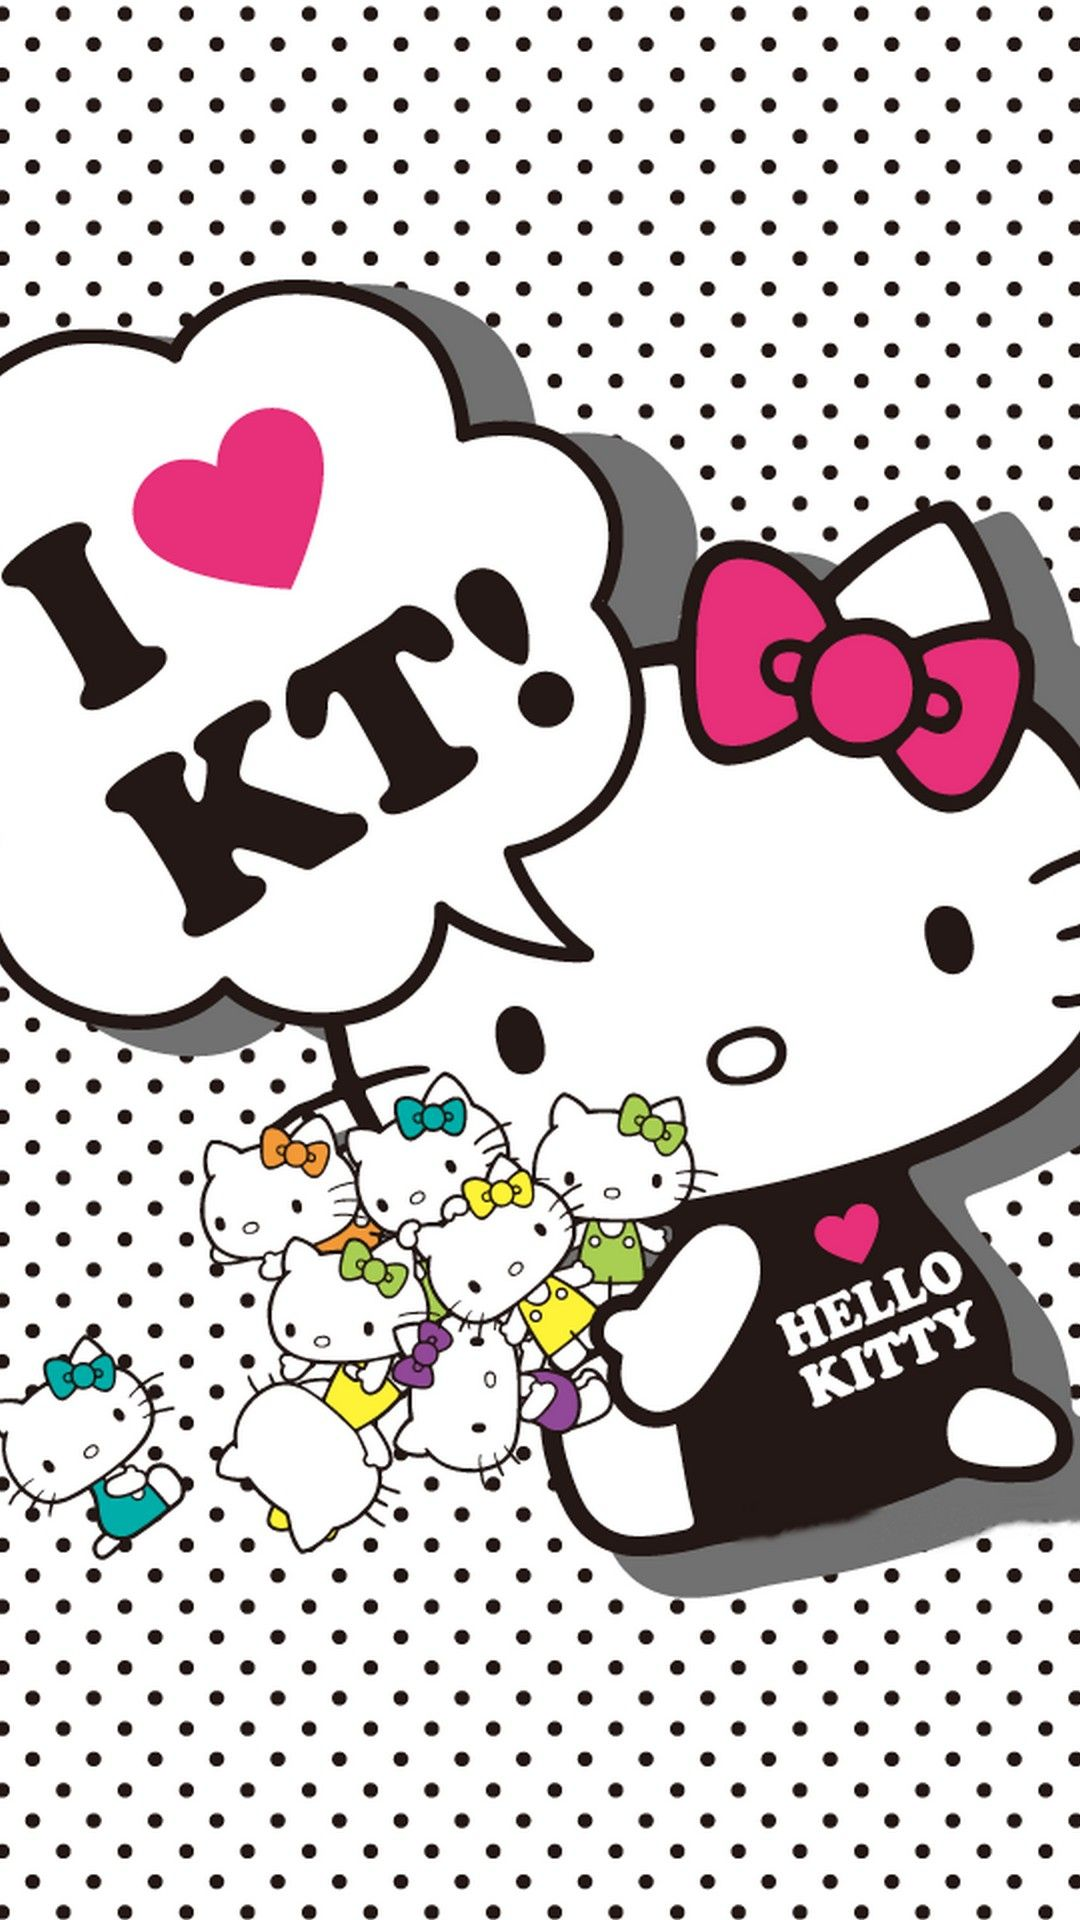 Hello Kitty Hd Wallpapers For Mobile 2021 Live Wallpaper Hd Hello Kitty Iphone Wallpaper Hello Kitty Wallpaper Hello Kitty